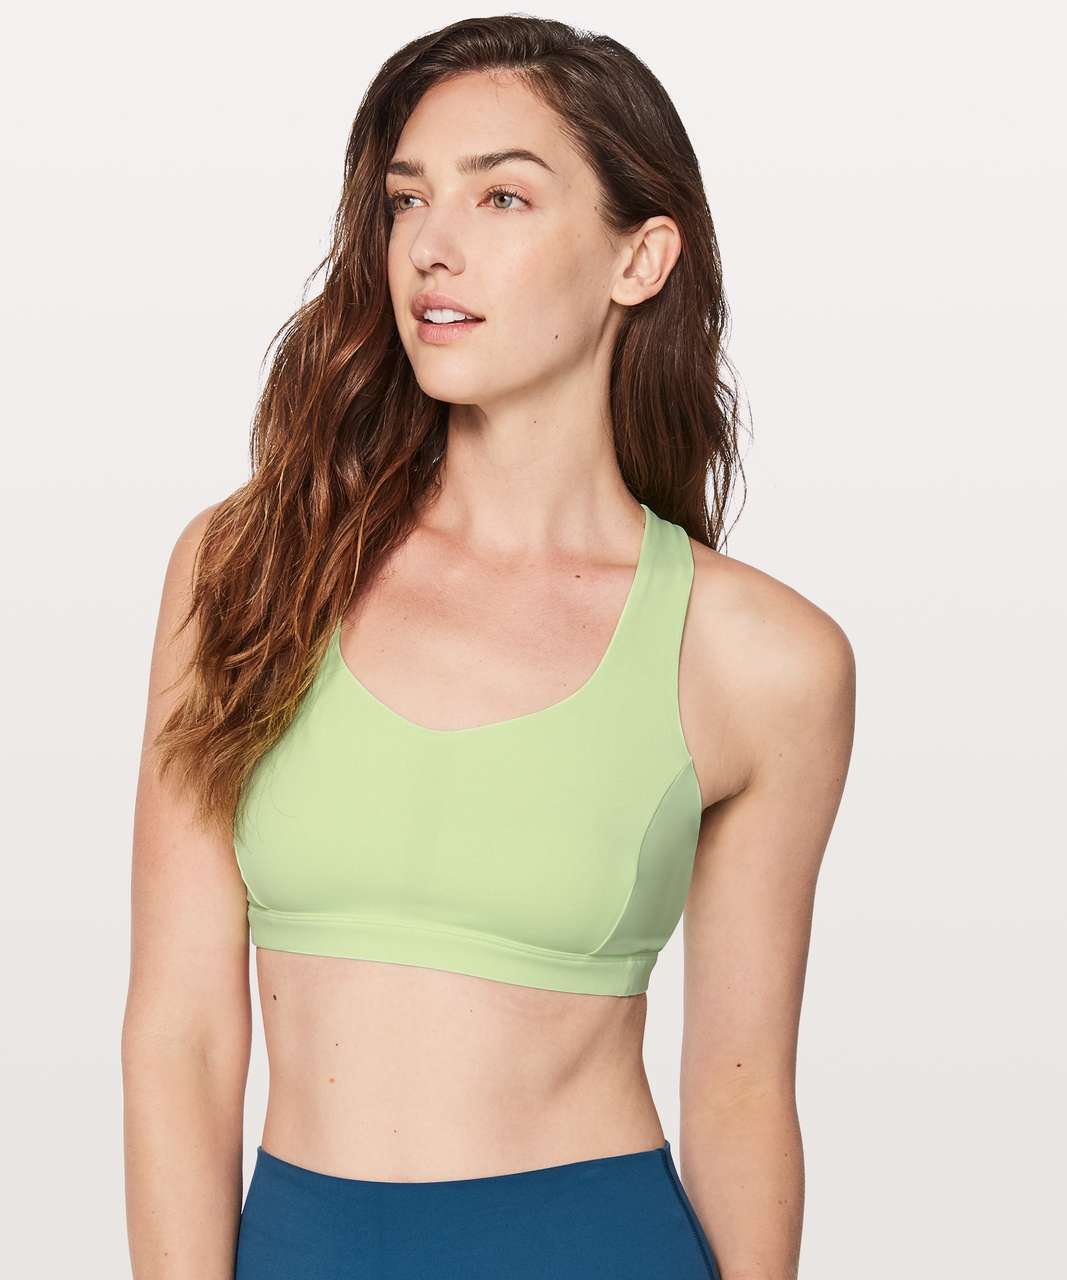 Lululemon Free To Be Serene Bra - Clear Mint